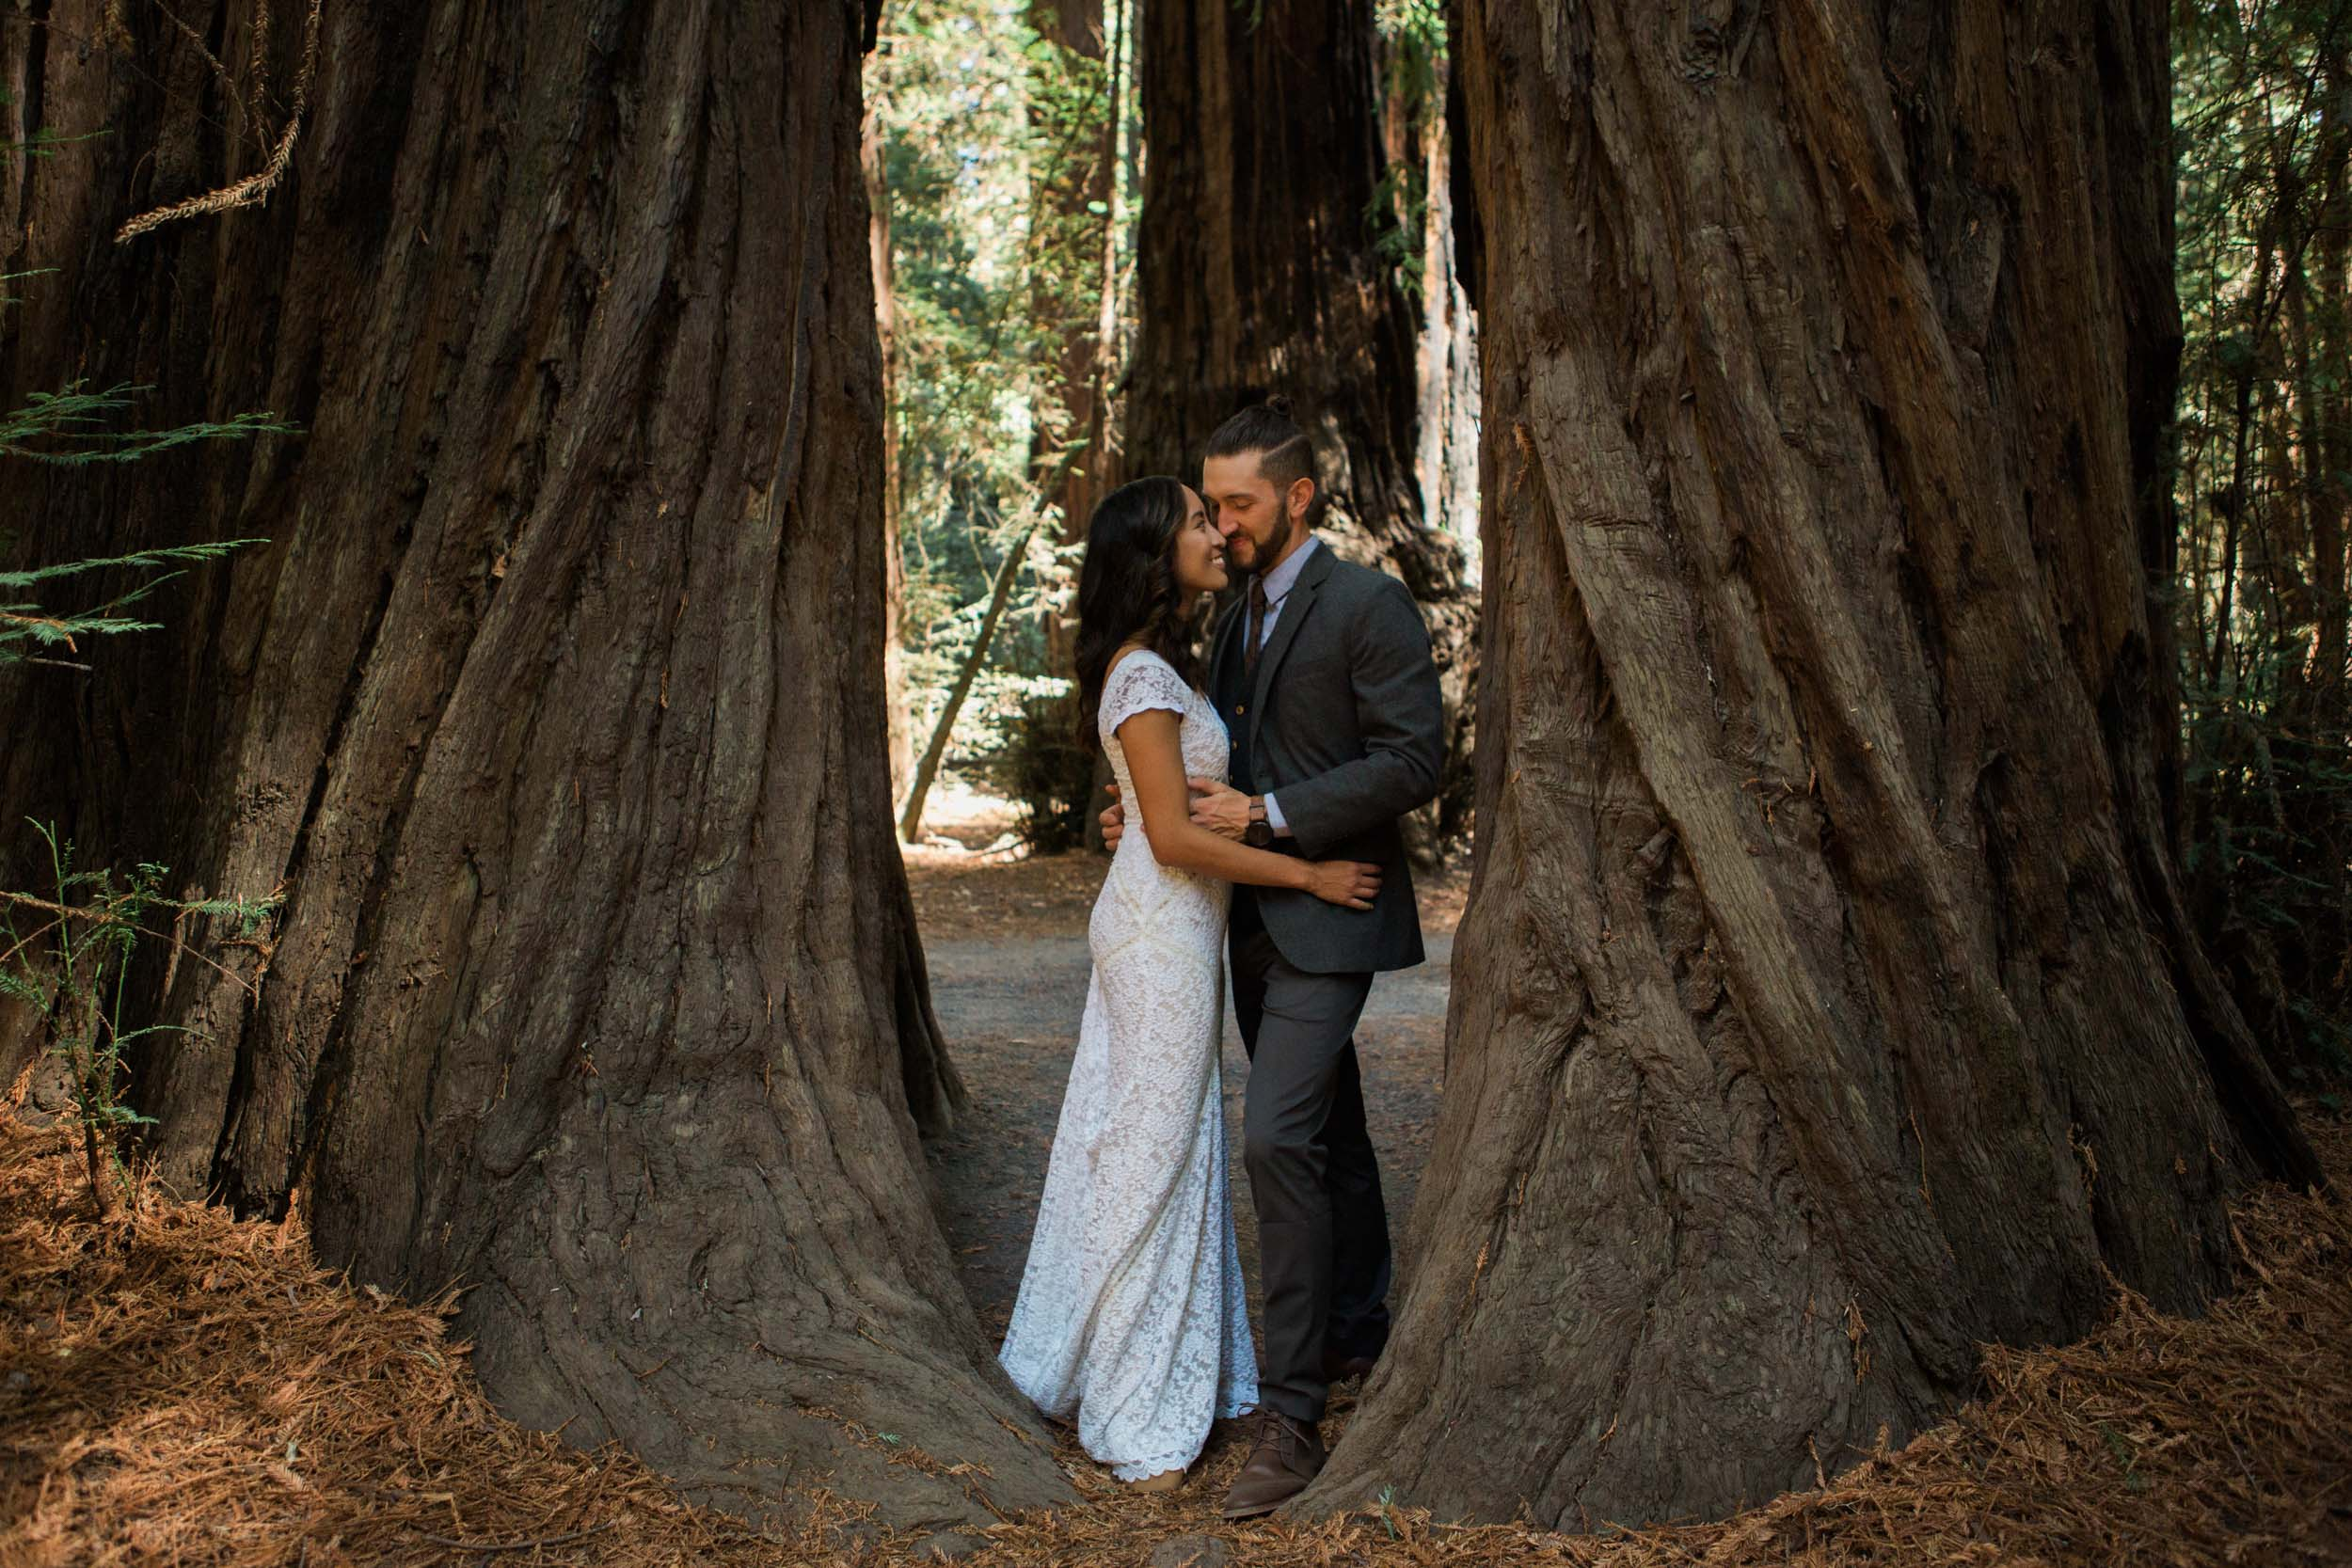 BKM-Photography-Russian-River-Wedding-Redwoods-Guerneville-California-Destination-Wedding-Photographer-0028.jpg